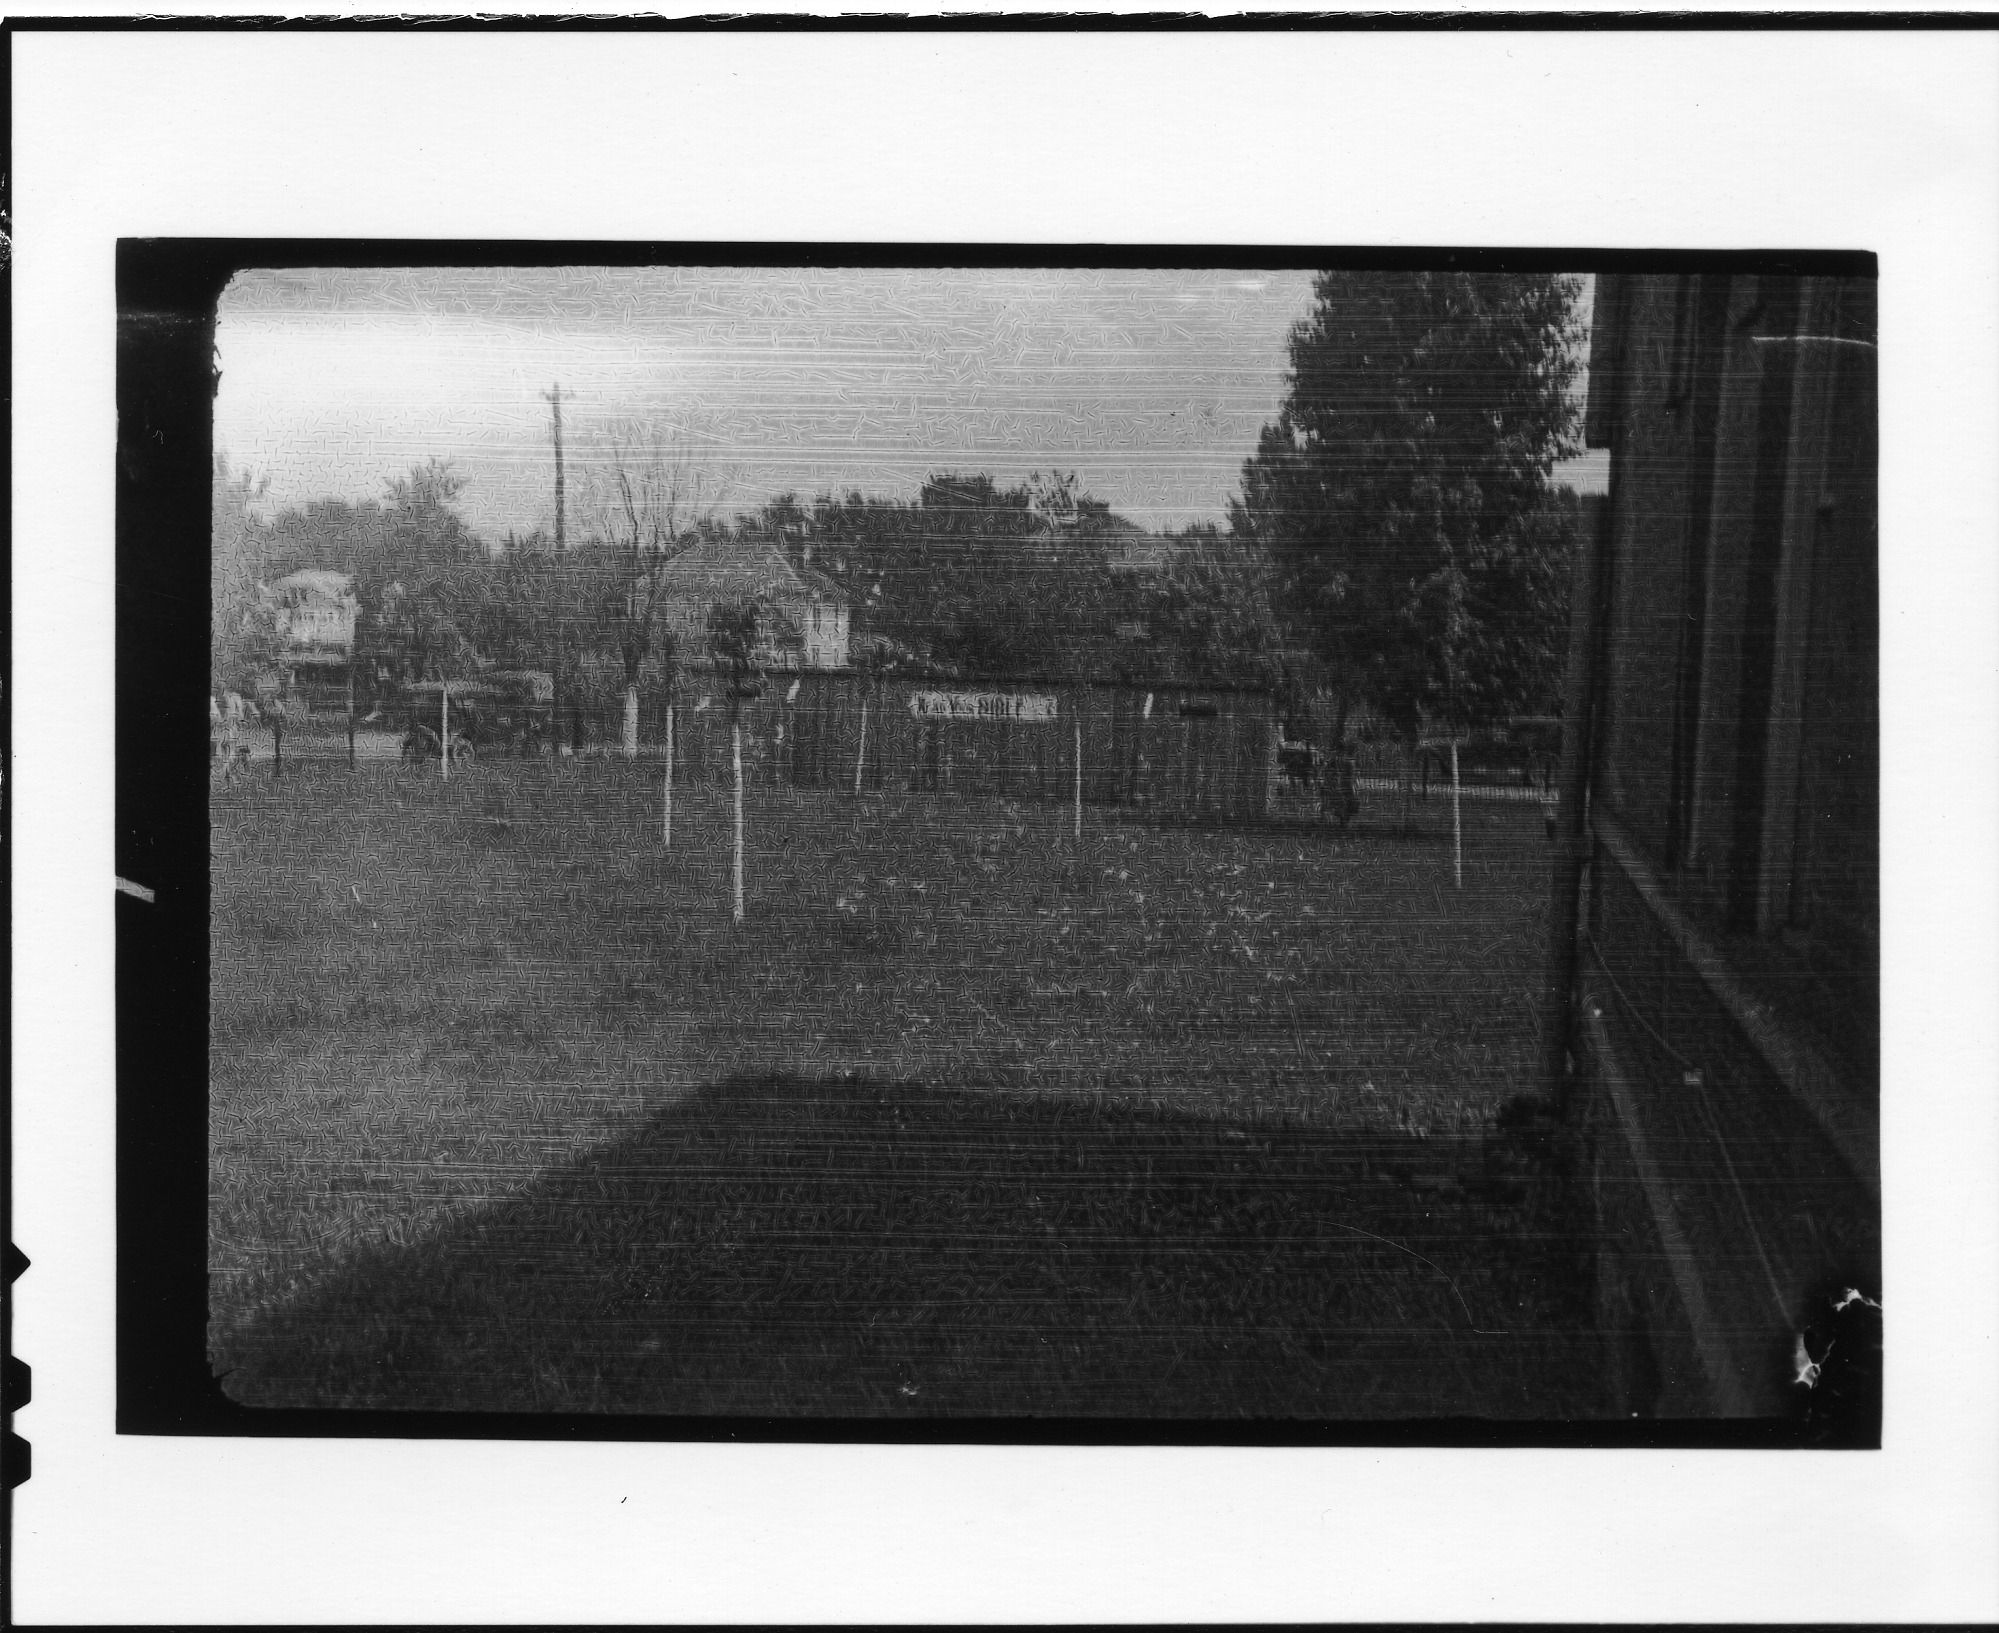 """Privies with """"Read Your Bible"""" sign during time of Scopes Trial, Dayton, Tennessee"""